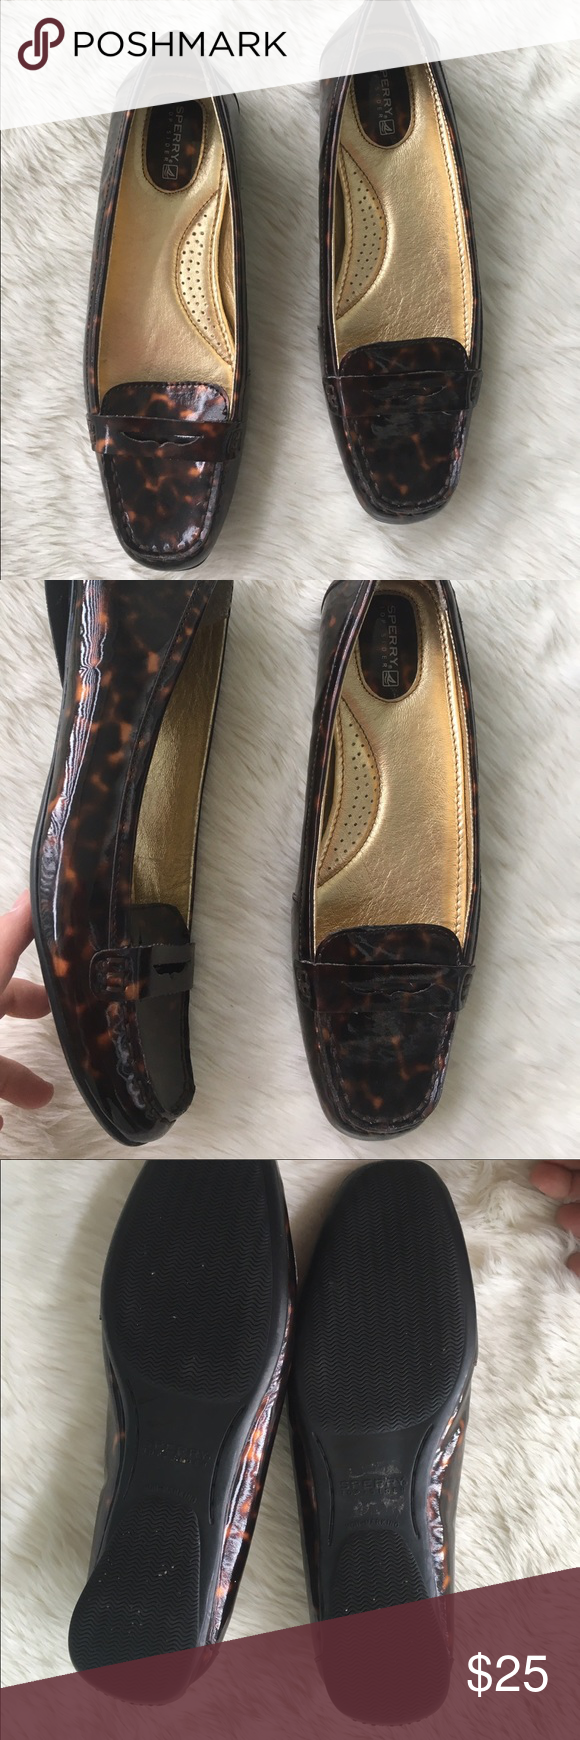 Sperry tortoise design loafers Sz 10 Sperry tortoise design shoes Sz 10. Gently worn condition Sperry Shoes Flats & Loafers